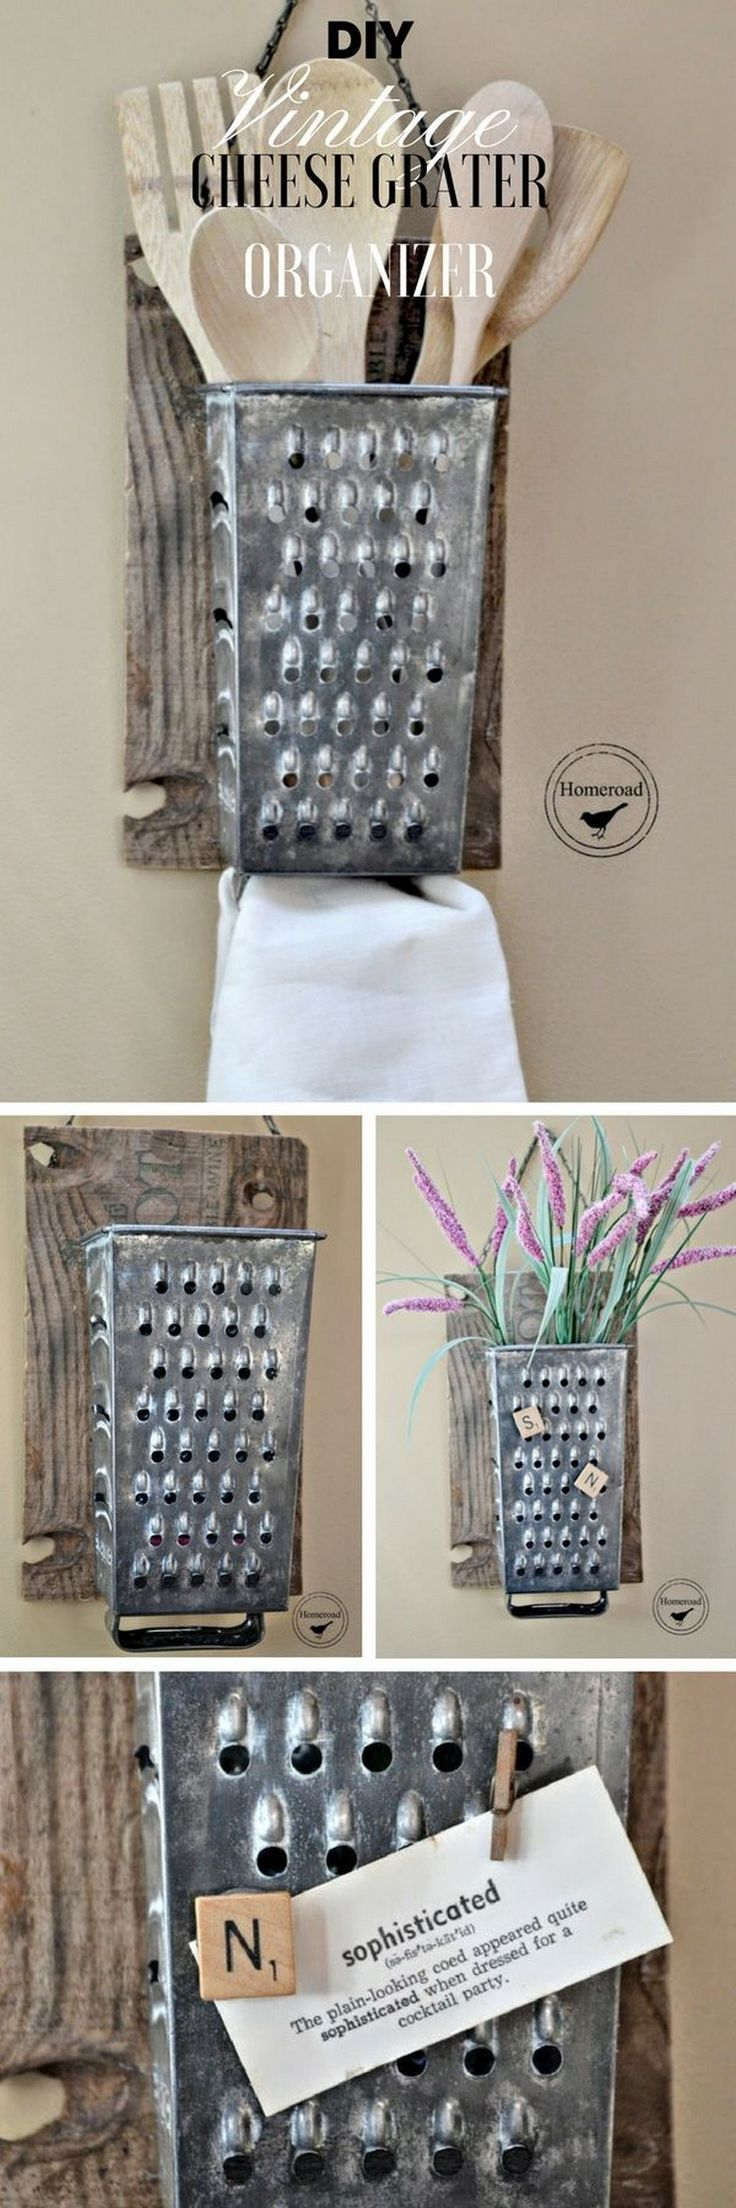 Best 25 rustic home decorating ideas on pinterest barnwood ideas painted mason jars and - Best rustic interior design ideas beauty of simplicity ...